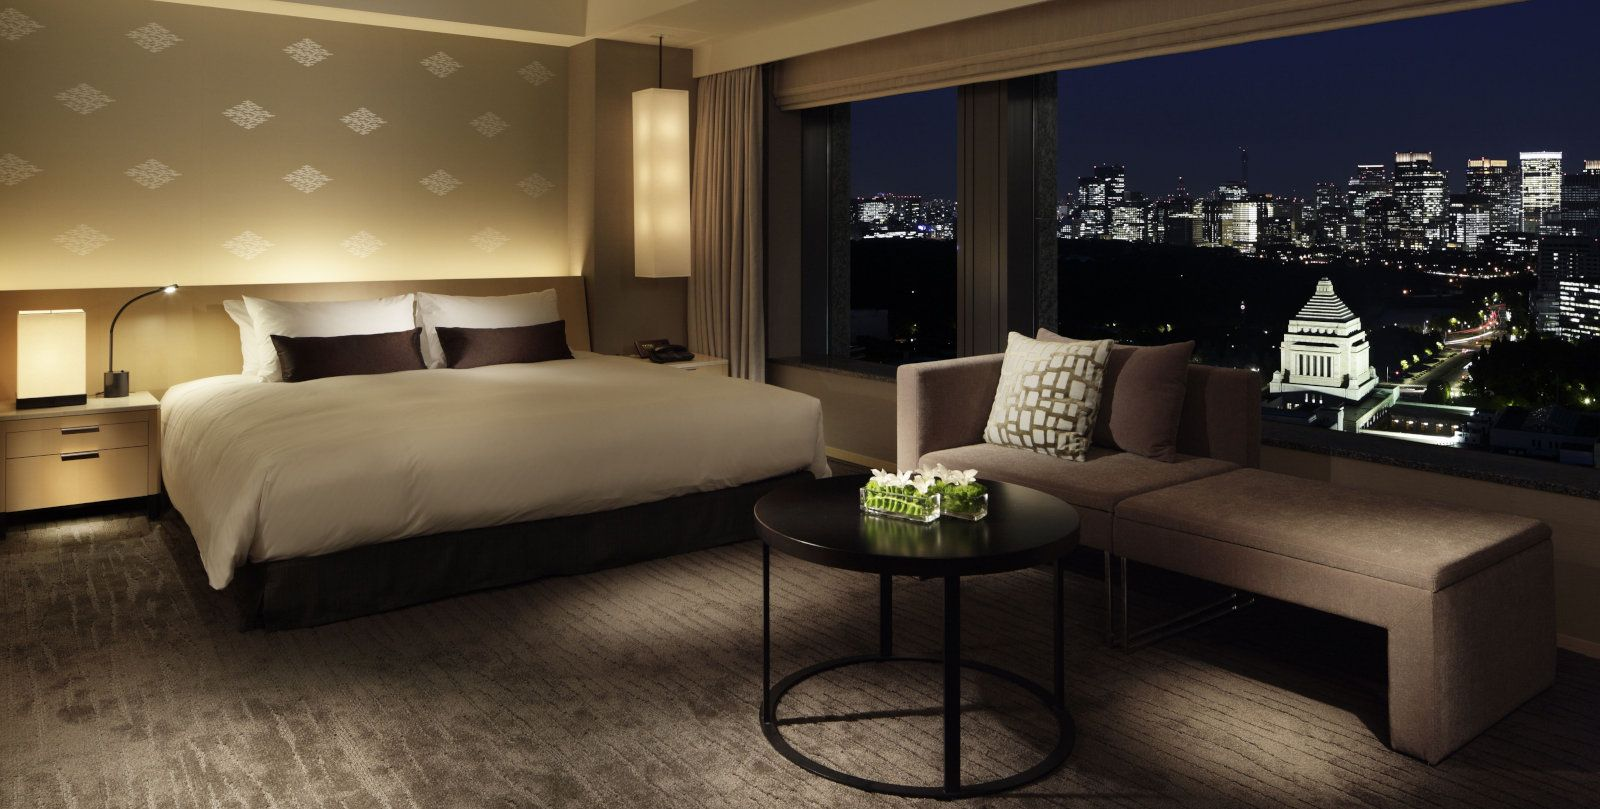 The Capitol Hotel Tokyu is a luxurious place for gay travellers to stay with amazing views.